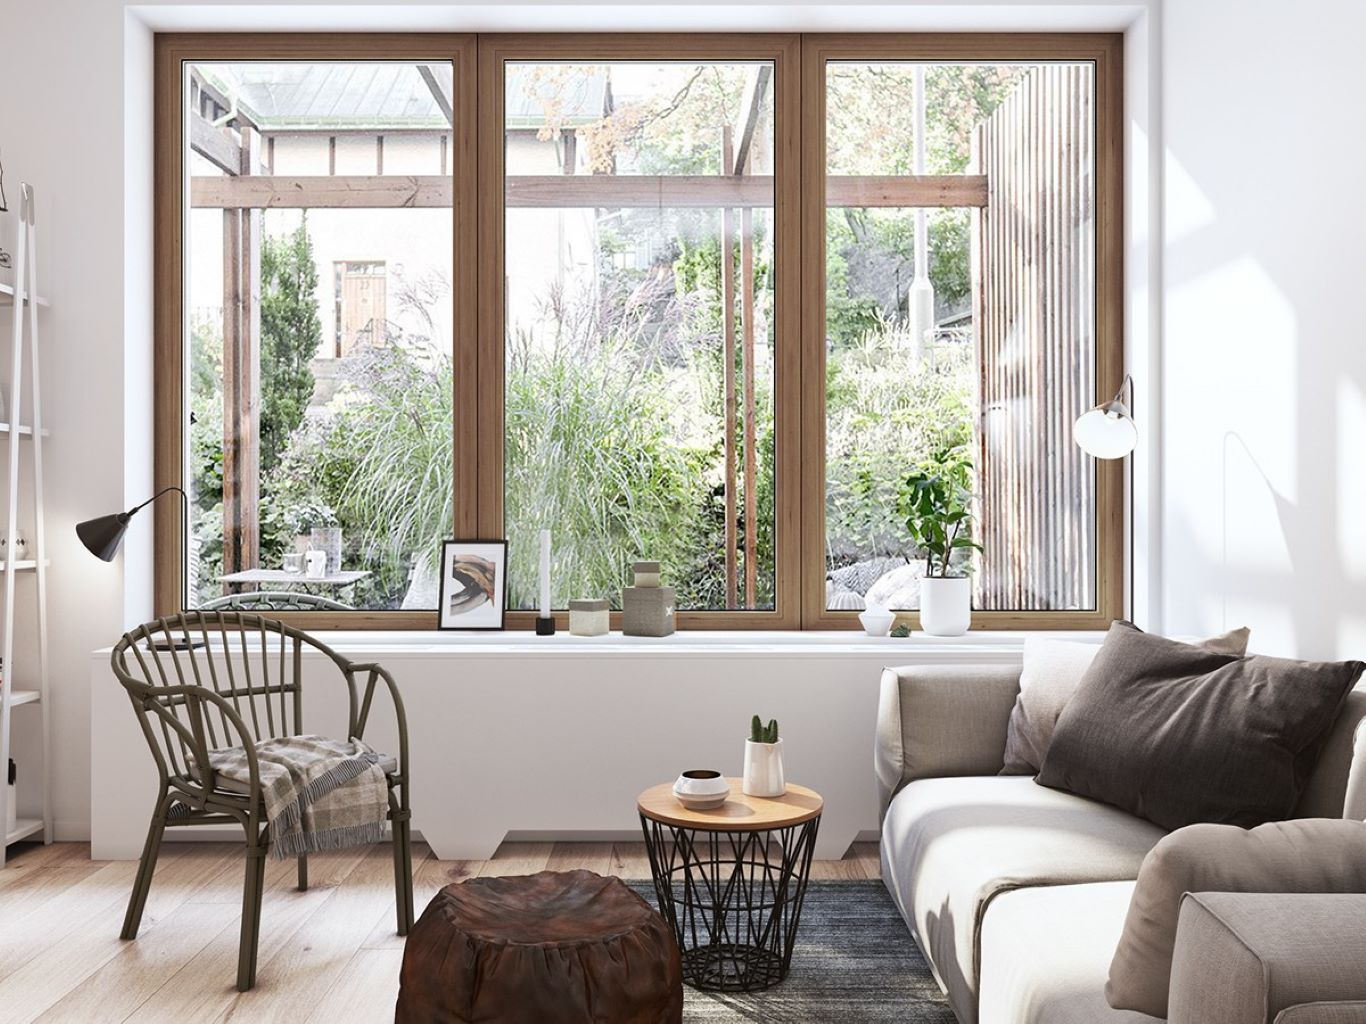 Simple design of glass wall in a crisp and clean Scandinavian space